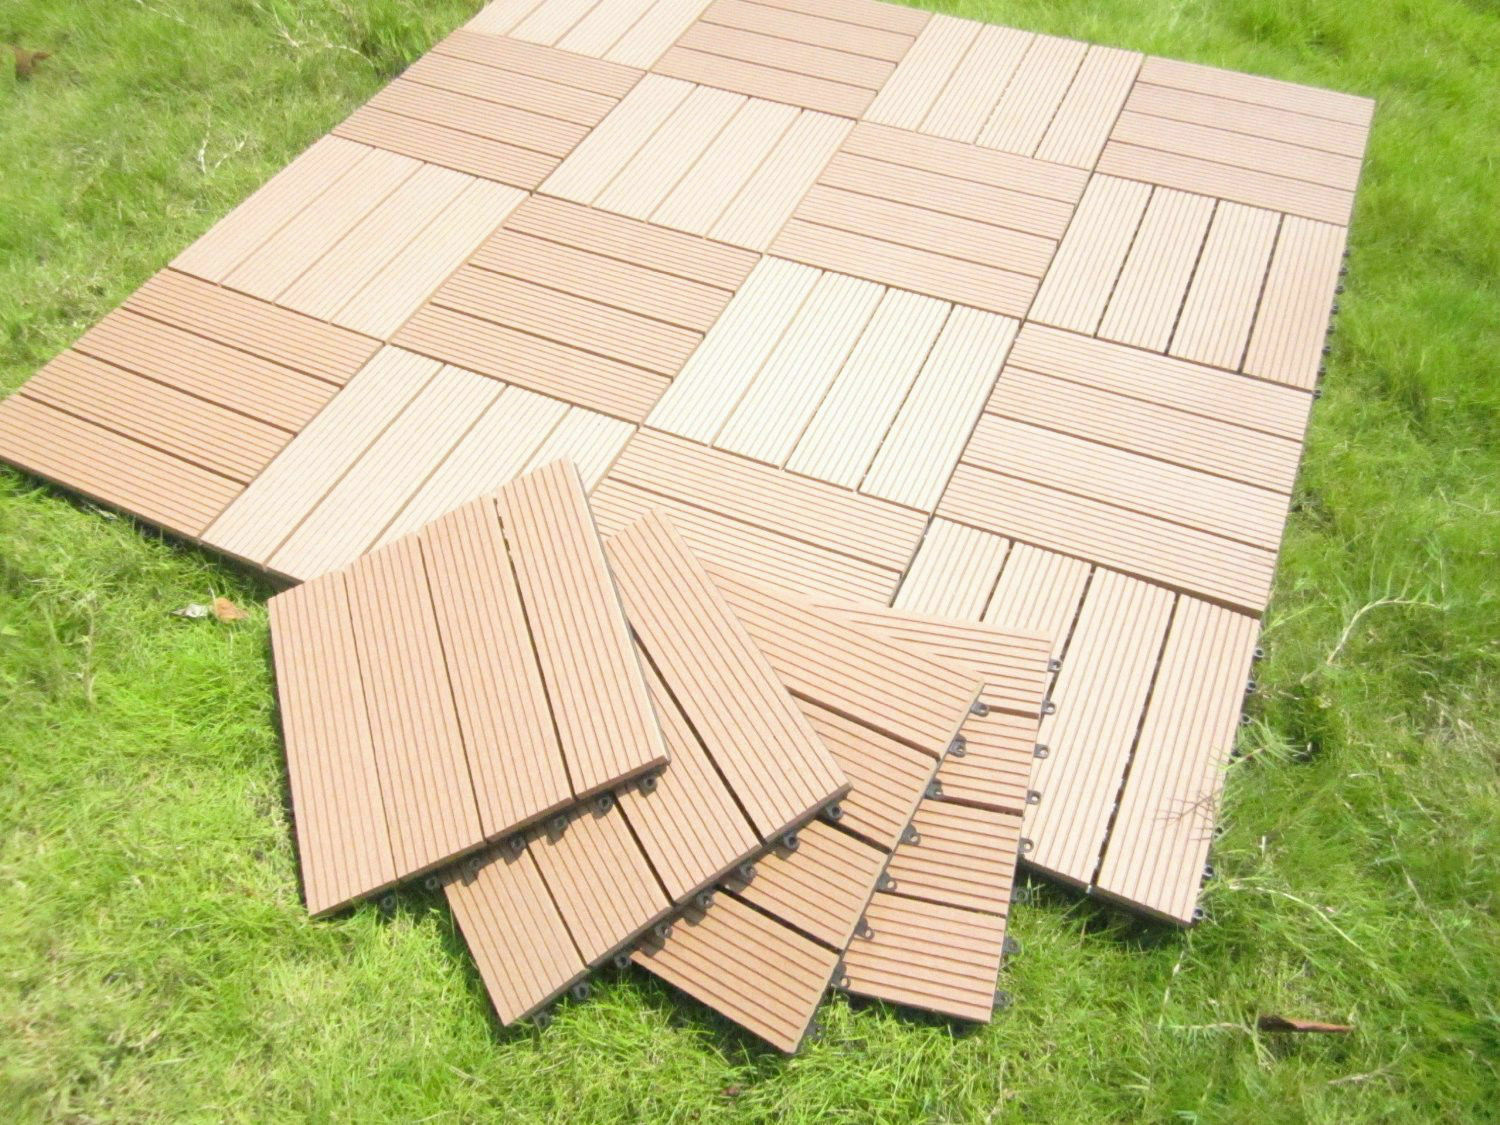 How To Install Interlocking Deck Tiles